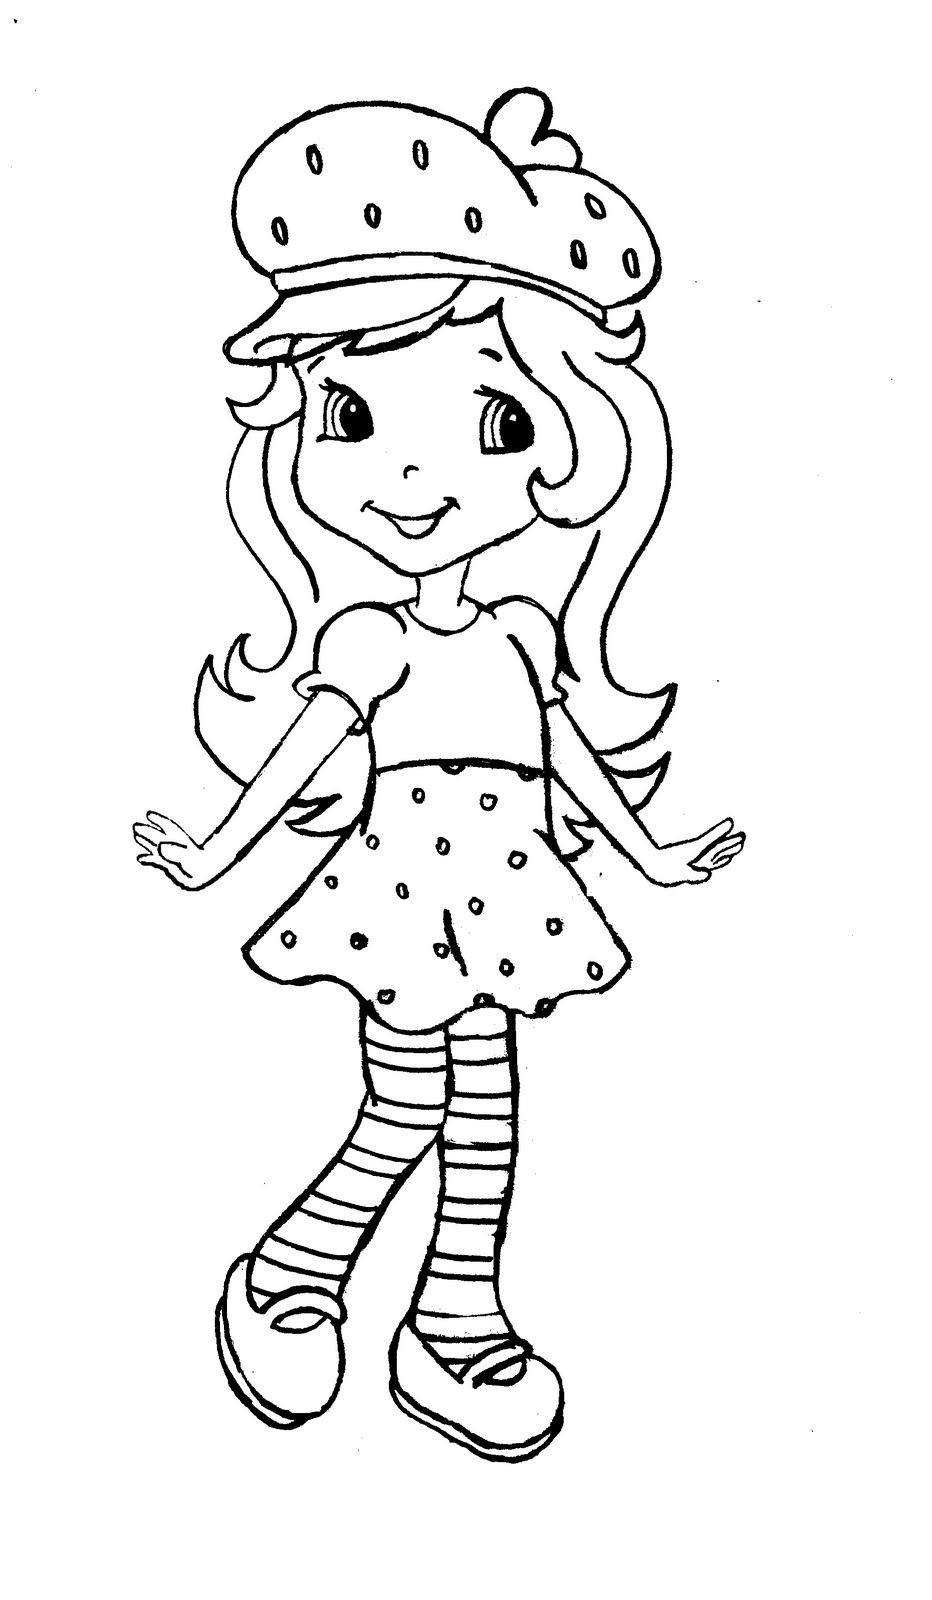 printable stamp coloring pages - photo#30